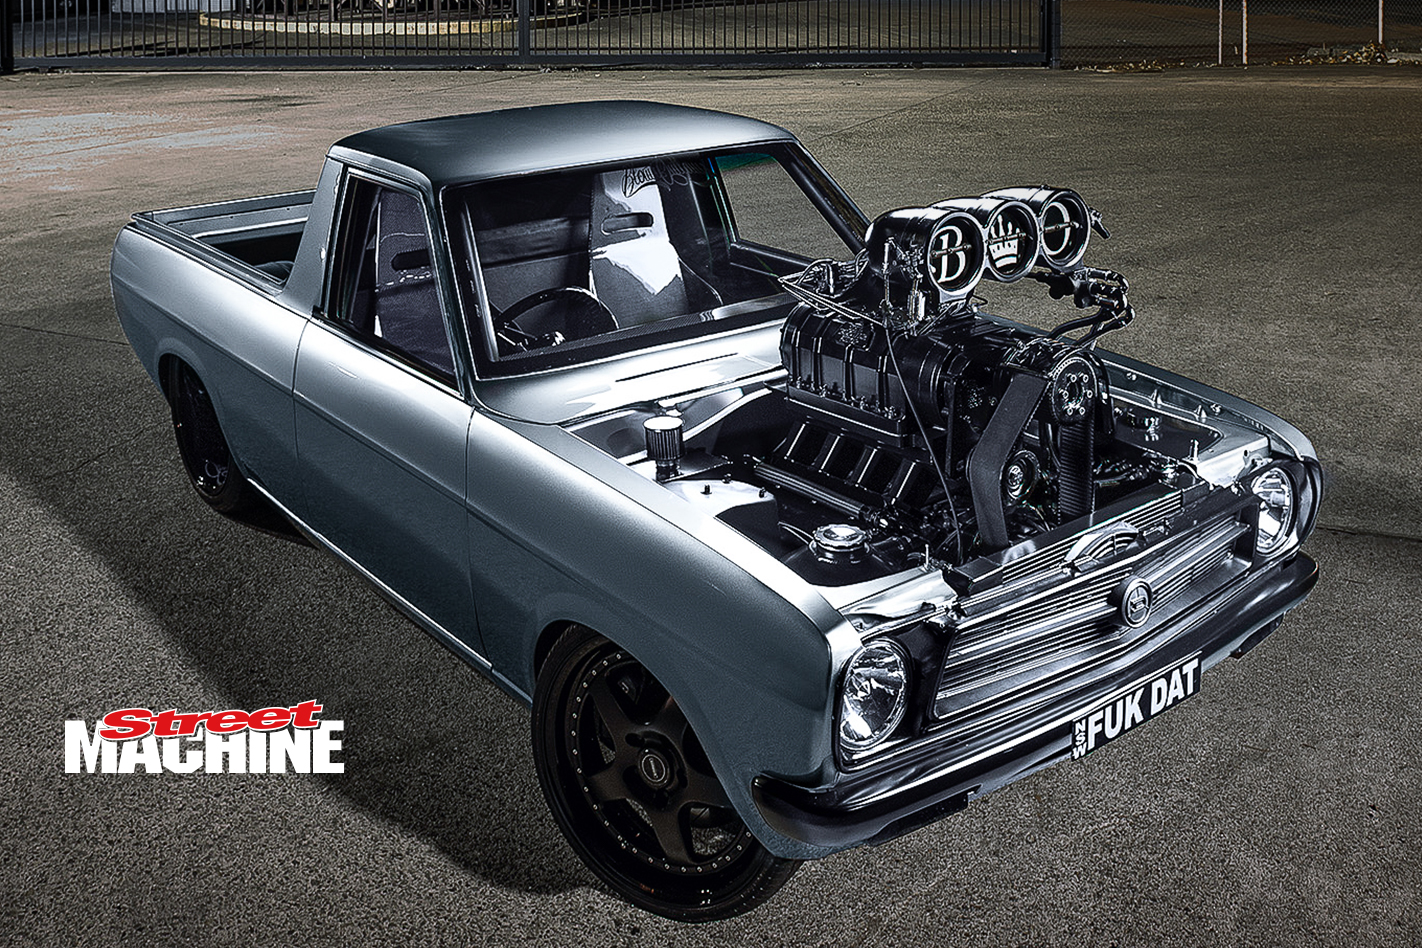 Datsun Ute V8 Blown Burnout